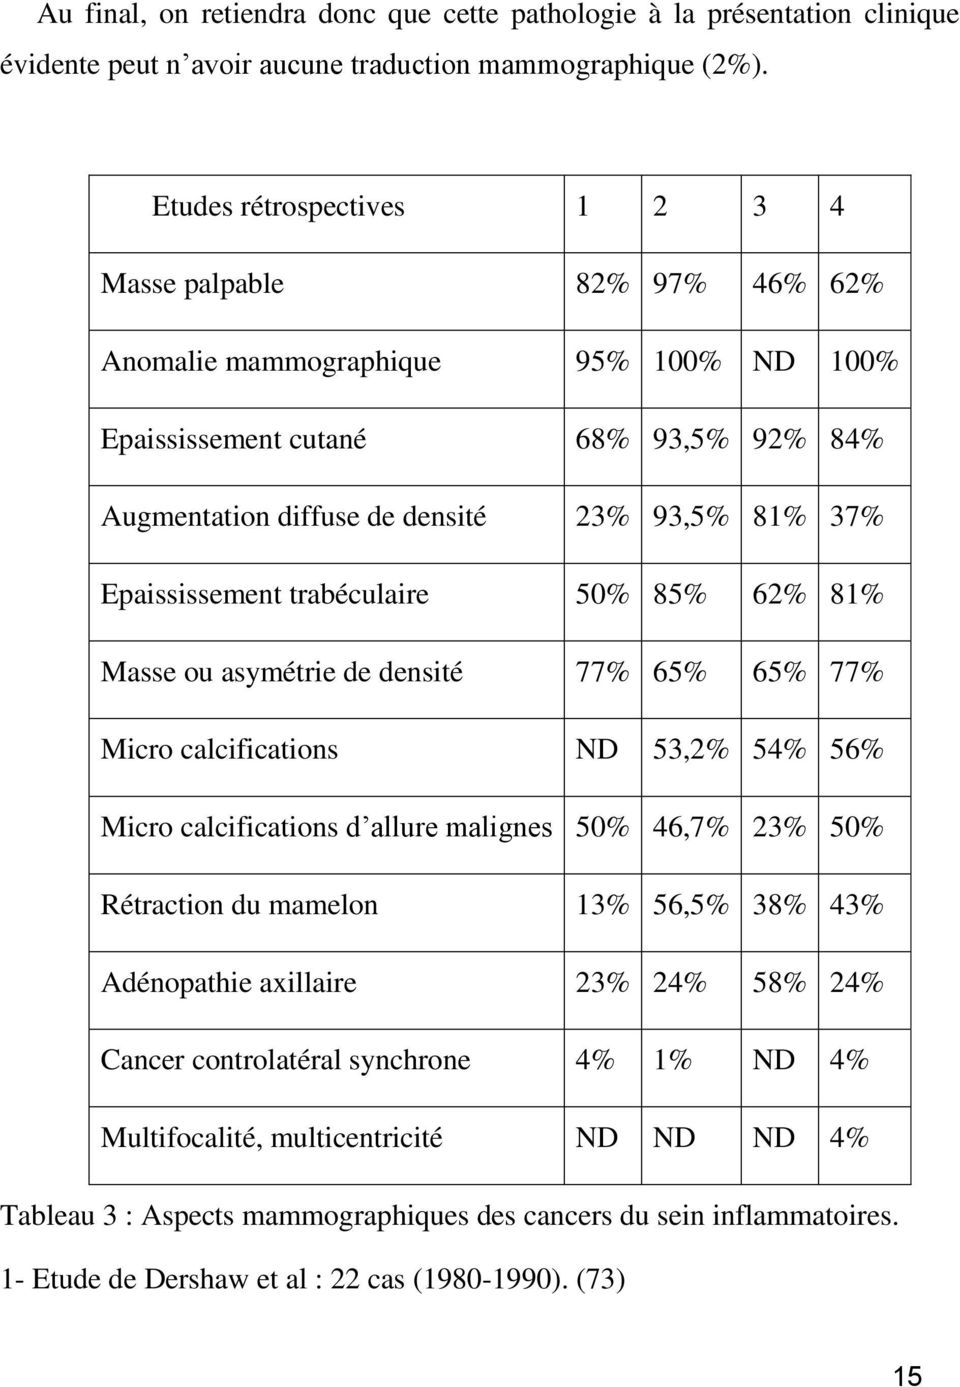 Epaississement trabéculaire 50% 85% 62% 81% Masse ou asymétrie de densité 77% 65% 65% 77% Micro calcifications ND 53,2% 54% 56% Micro calcifications d allure malignes 50% 46,7% 23% 50% Rétraction du